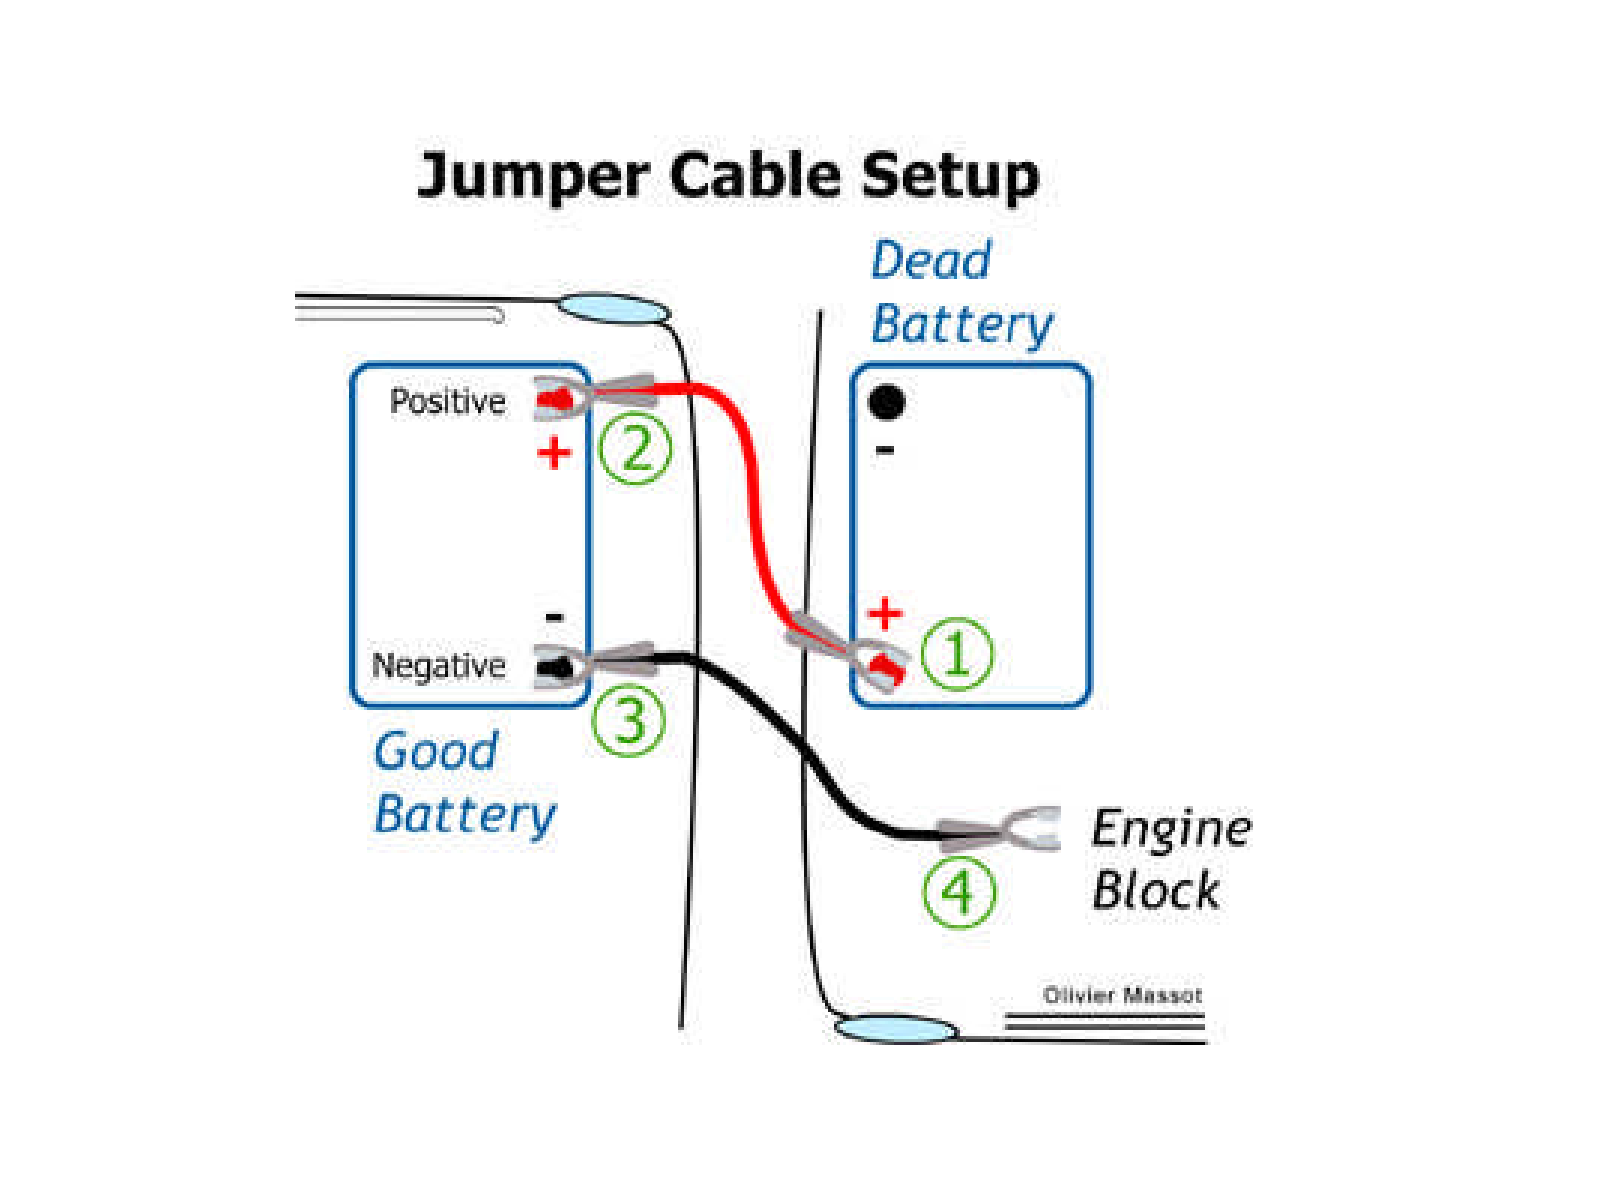 How To Jump A Car Battery With Out Jumpoer Cables